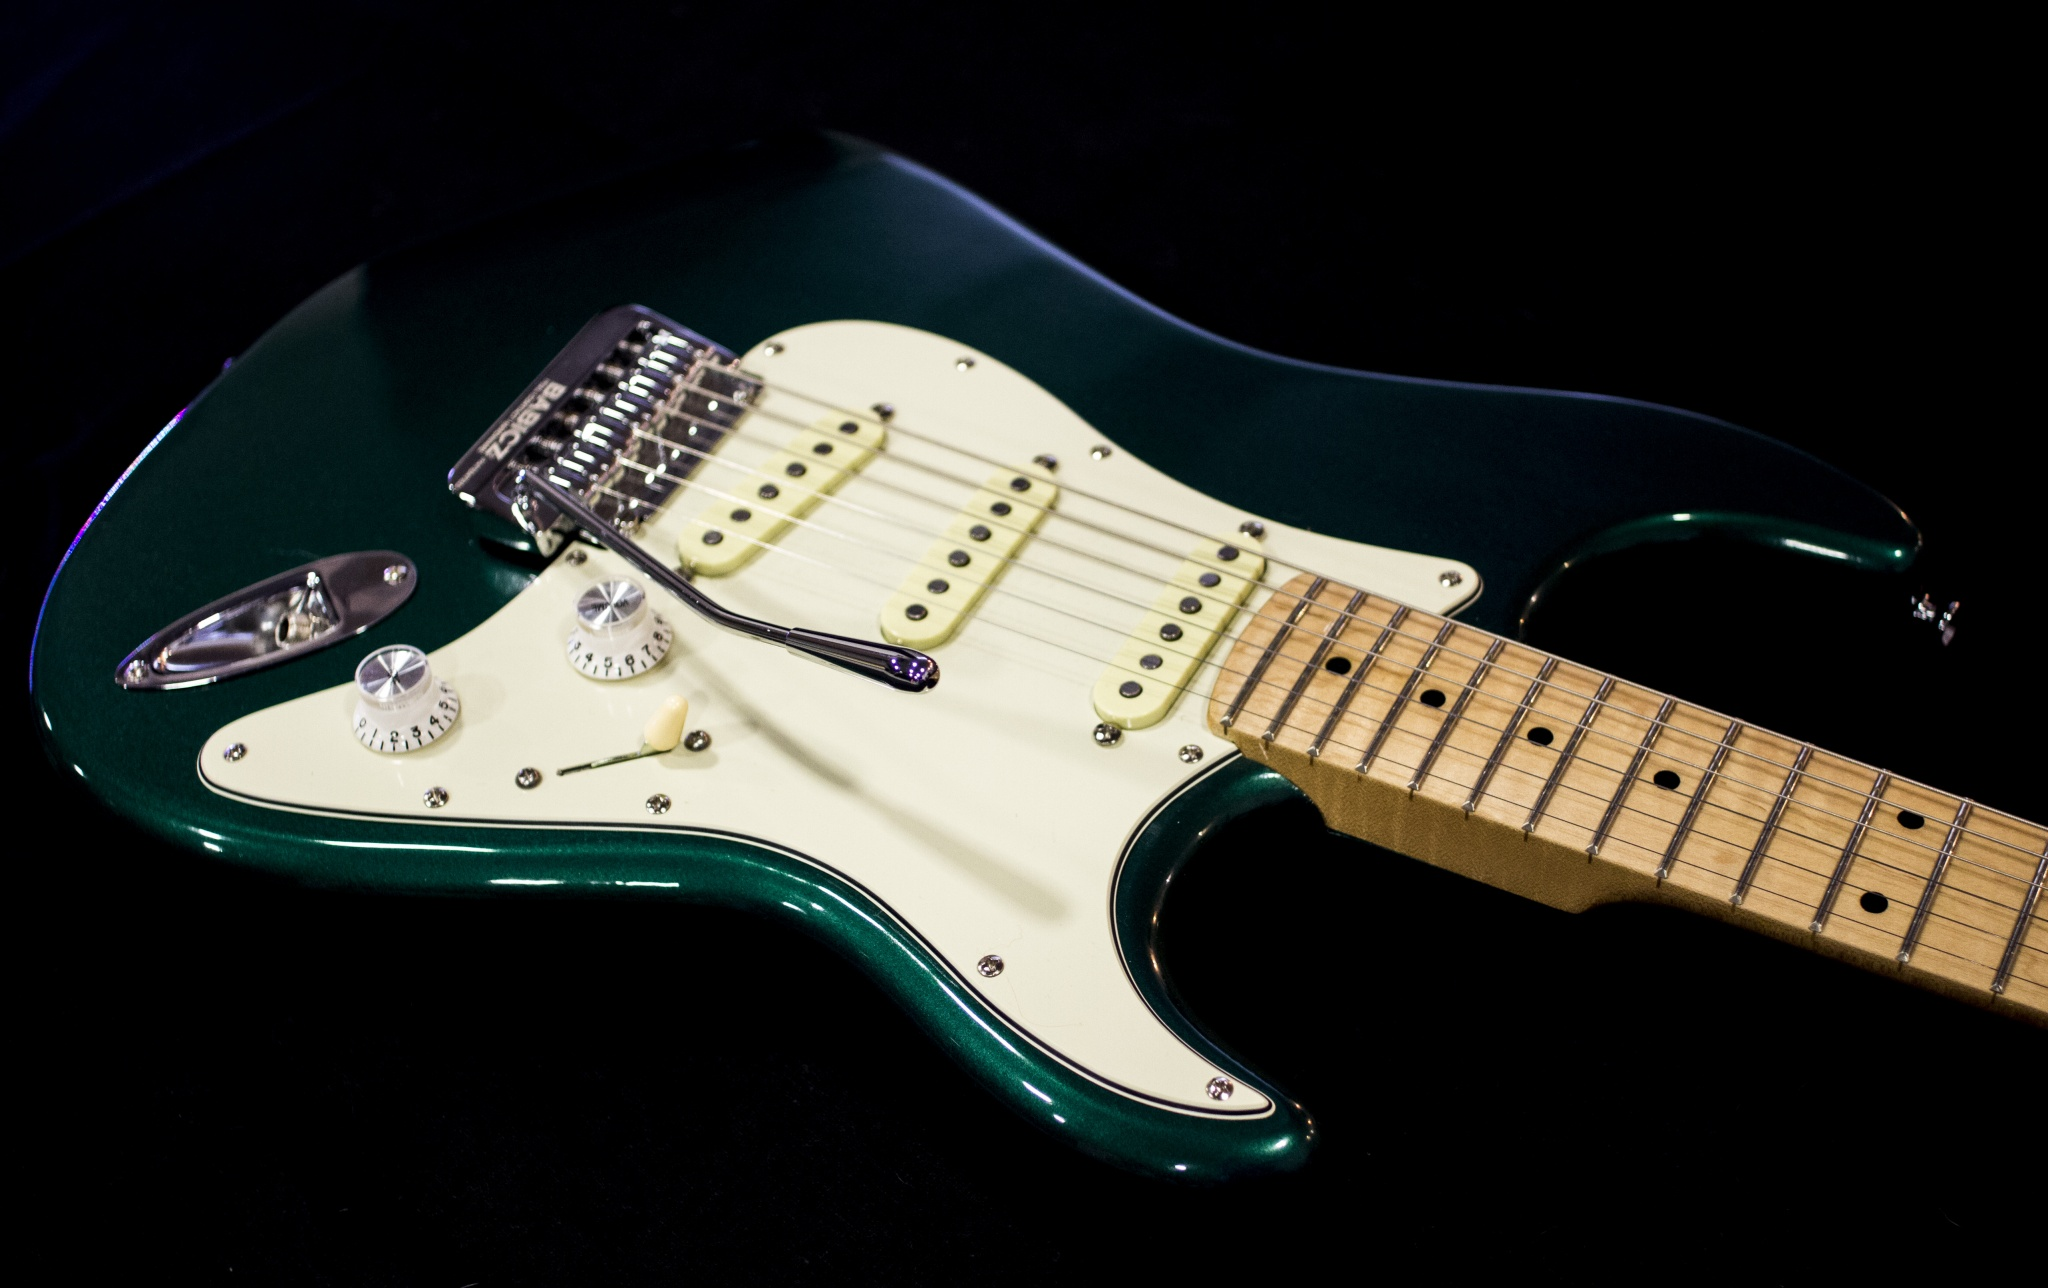 IMG 2382 scaled - LAJ Strat Green Relic Arce